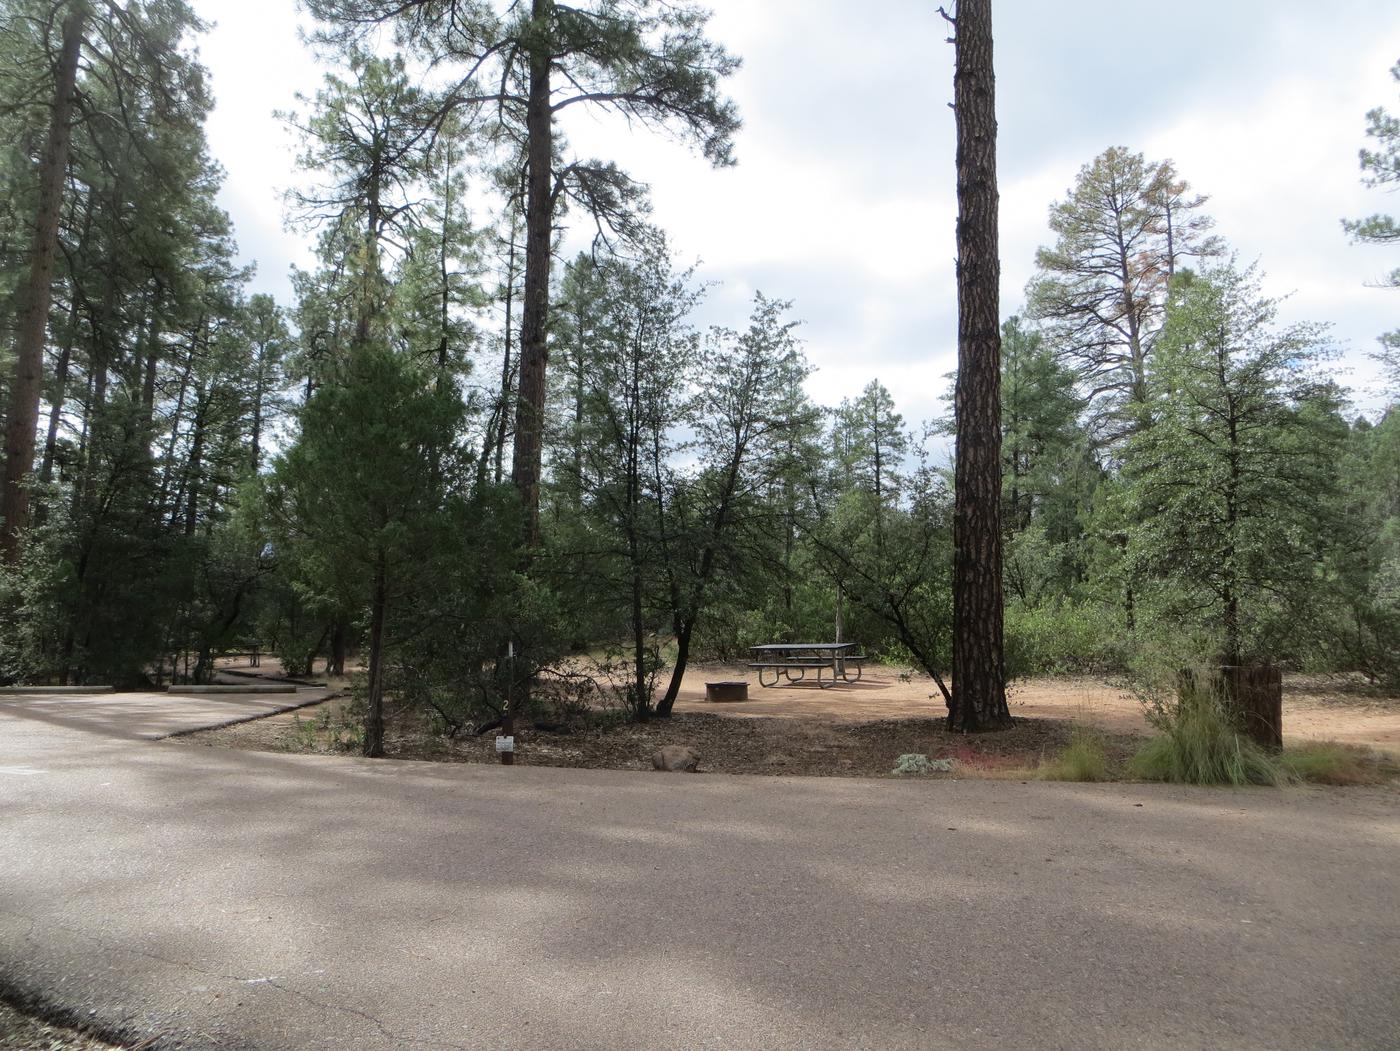 Houston Mesa, Black Bear Loop site #02 featuring parking, entrance to the wooded site, and picnic tableHouston Mesa, Black Bear Loop site #02 featuring parking, entrance to the wooded site, and picnic table